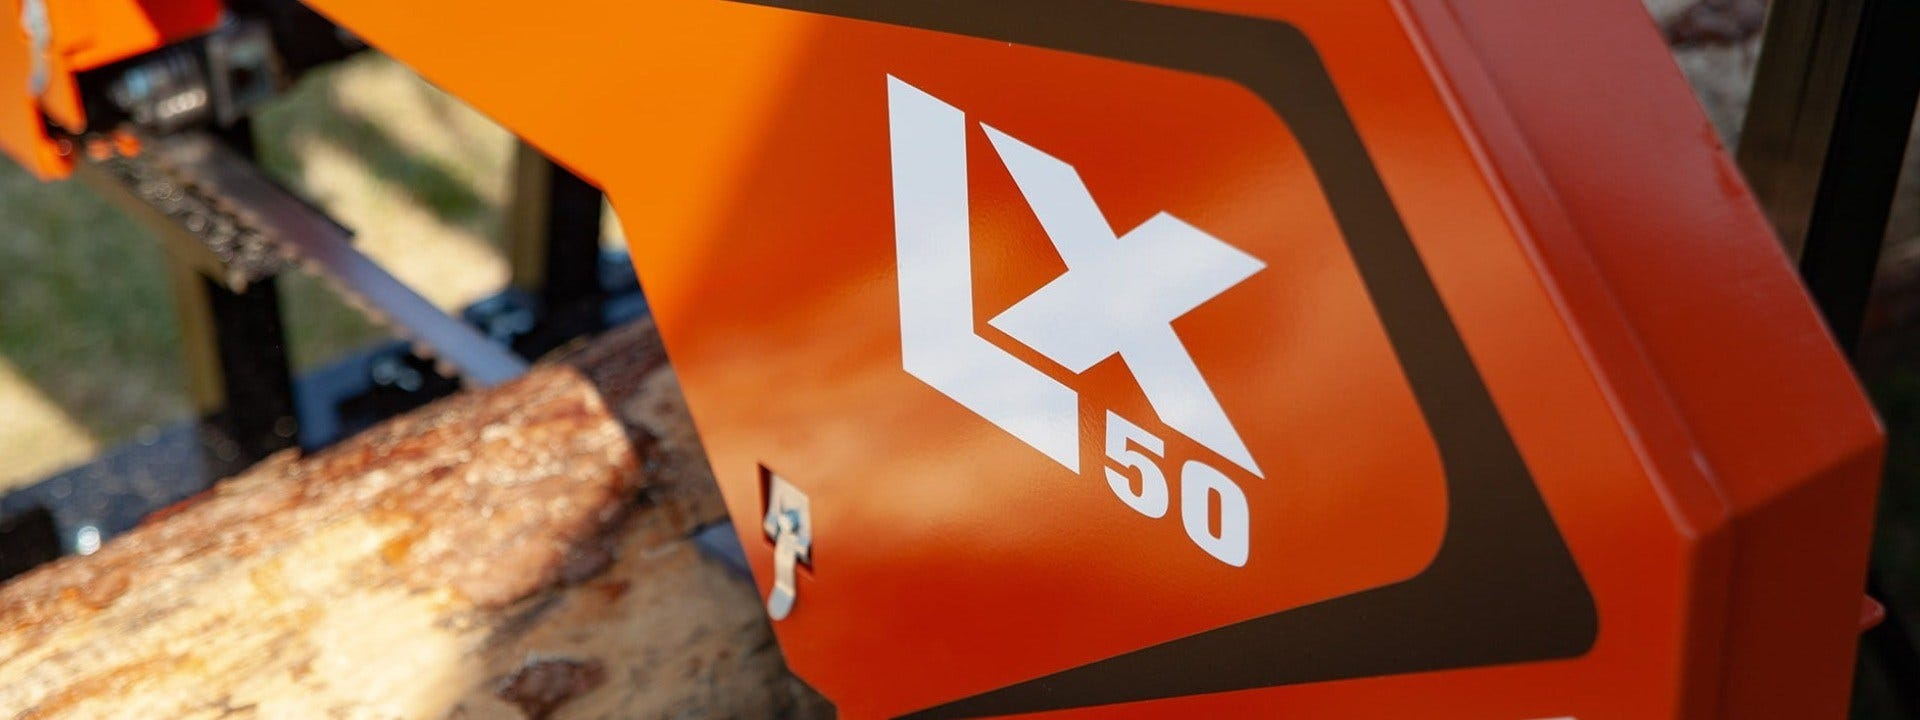 LX50 is the smallest and most inexpensive band saw available from Wood-Mizer